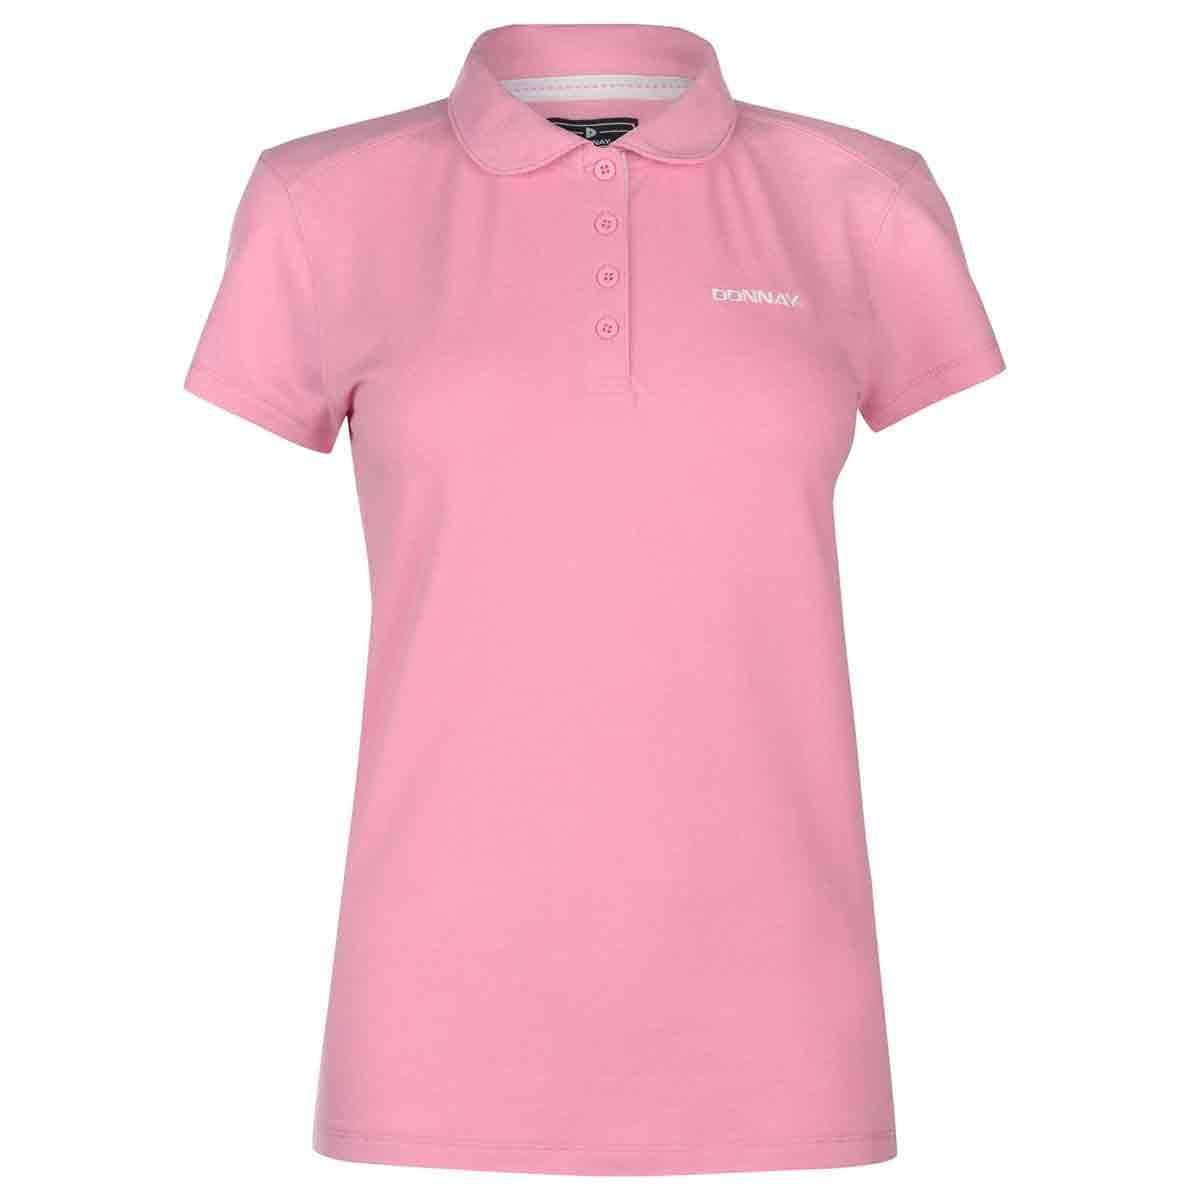 Donnay Women's Pique Polo - Red, 14